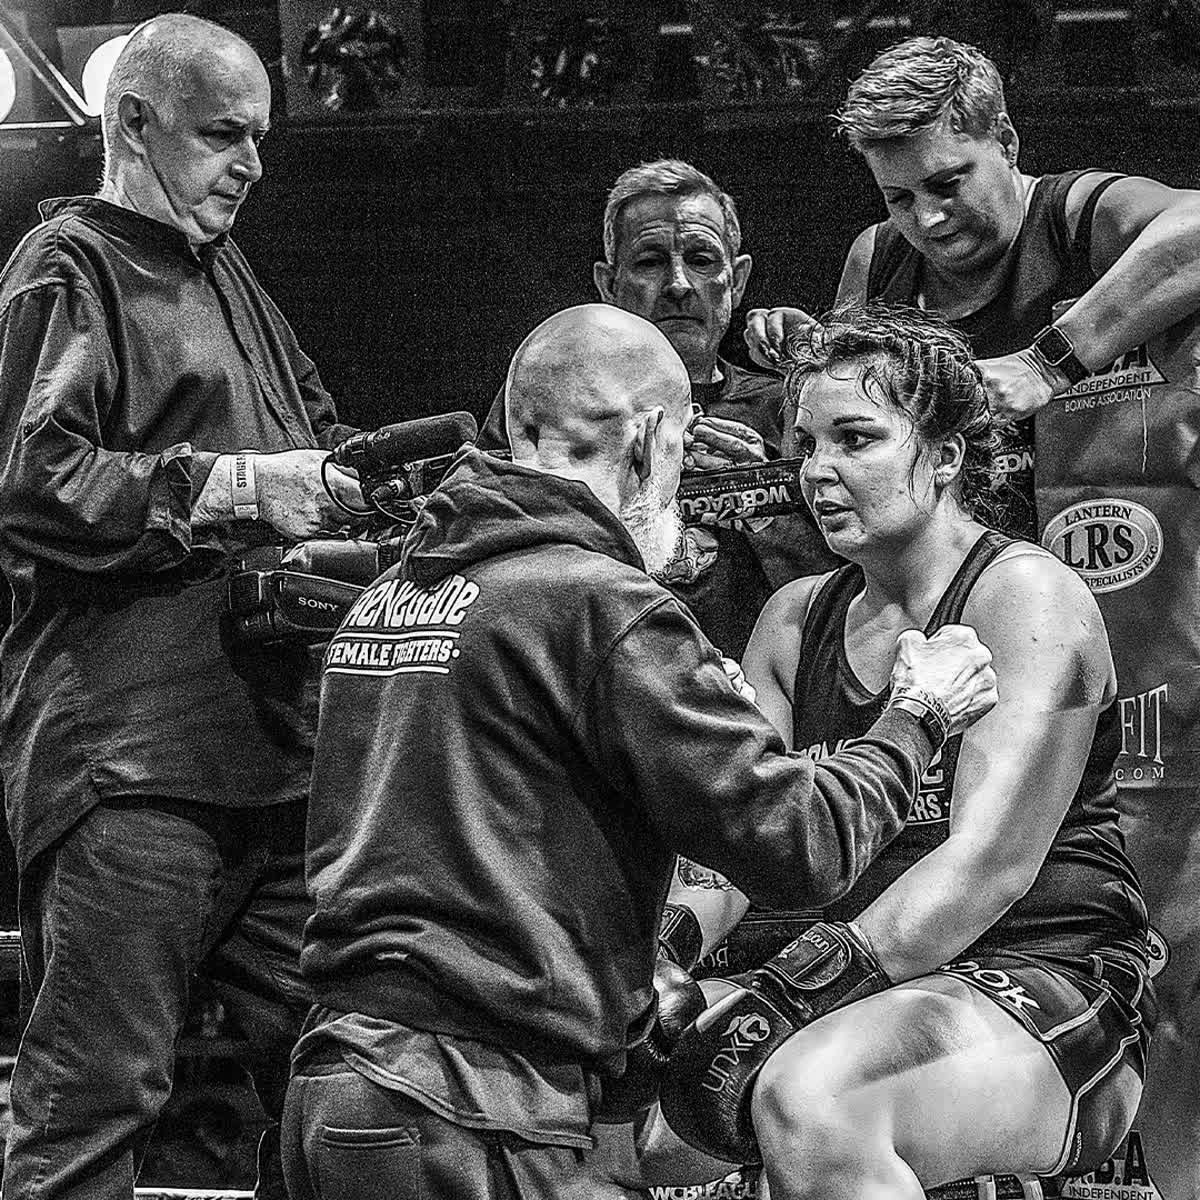 Your only limitation is your imagination.   Fight Night - April 25th - Ibis Forum, Stevenage – Tickets Available Via The Link Below  http://www.ladiesboxing.co.uk  #LadiesBoxing #WhiteCollarBoxing #BoxingForCharity #LondonBoxing #Boxing #ProBoxing #AmateurBoxingpic.twitter.com/3HwcM8rRXt